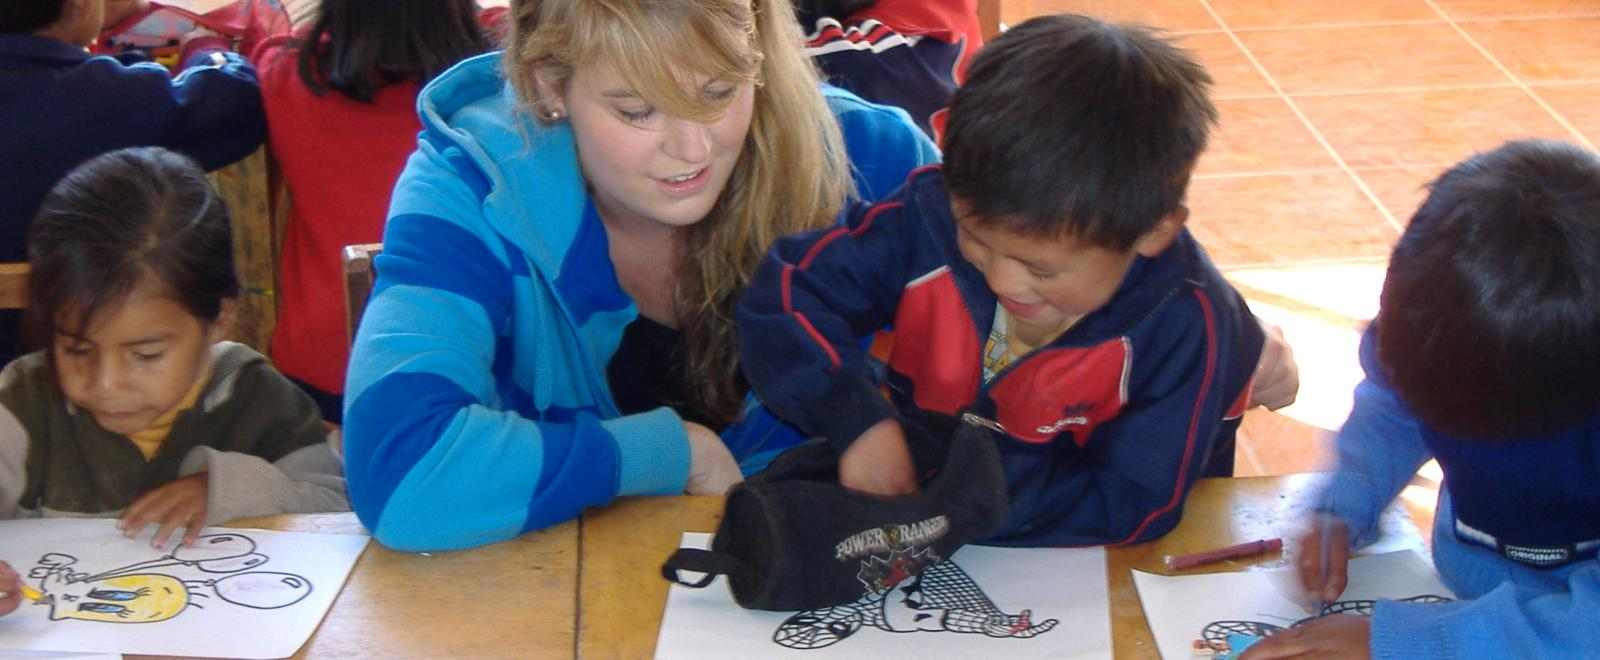 Projects Abroad volunteer works with children on the Peru Childhood Development Project